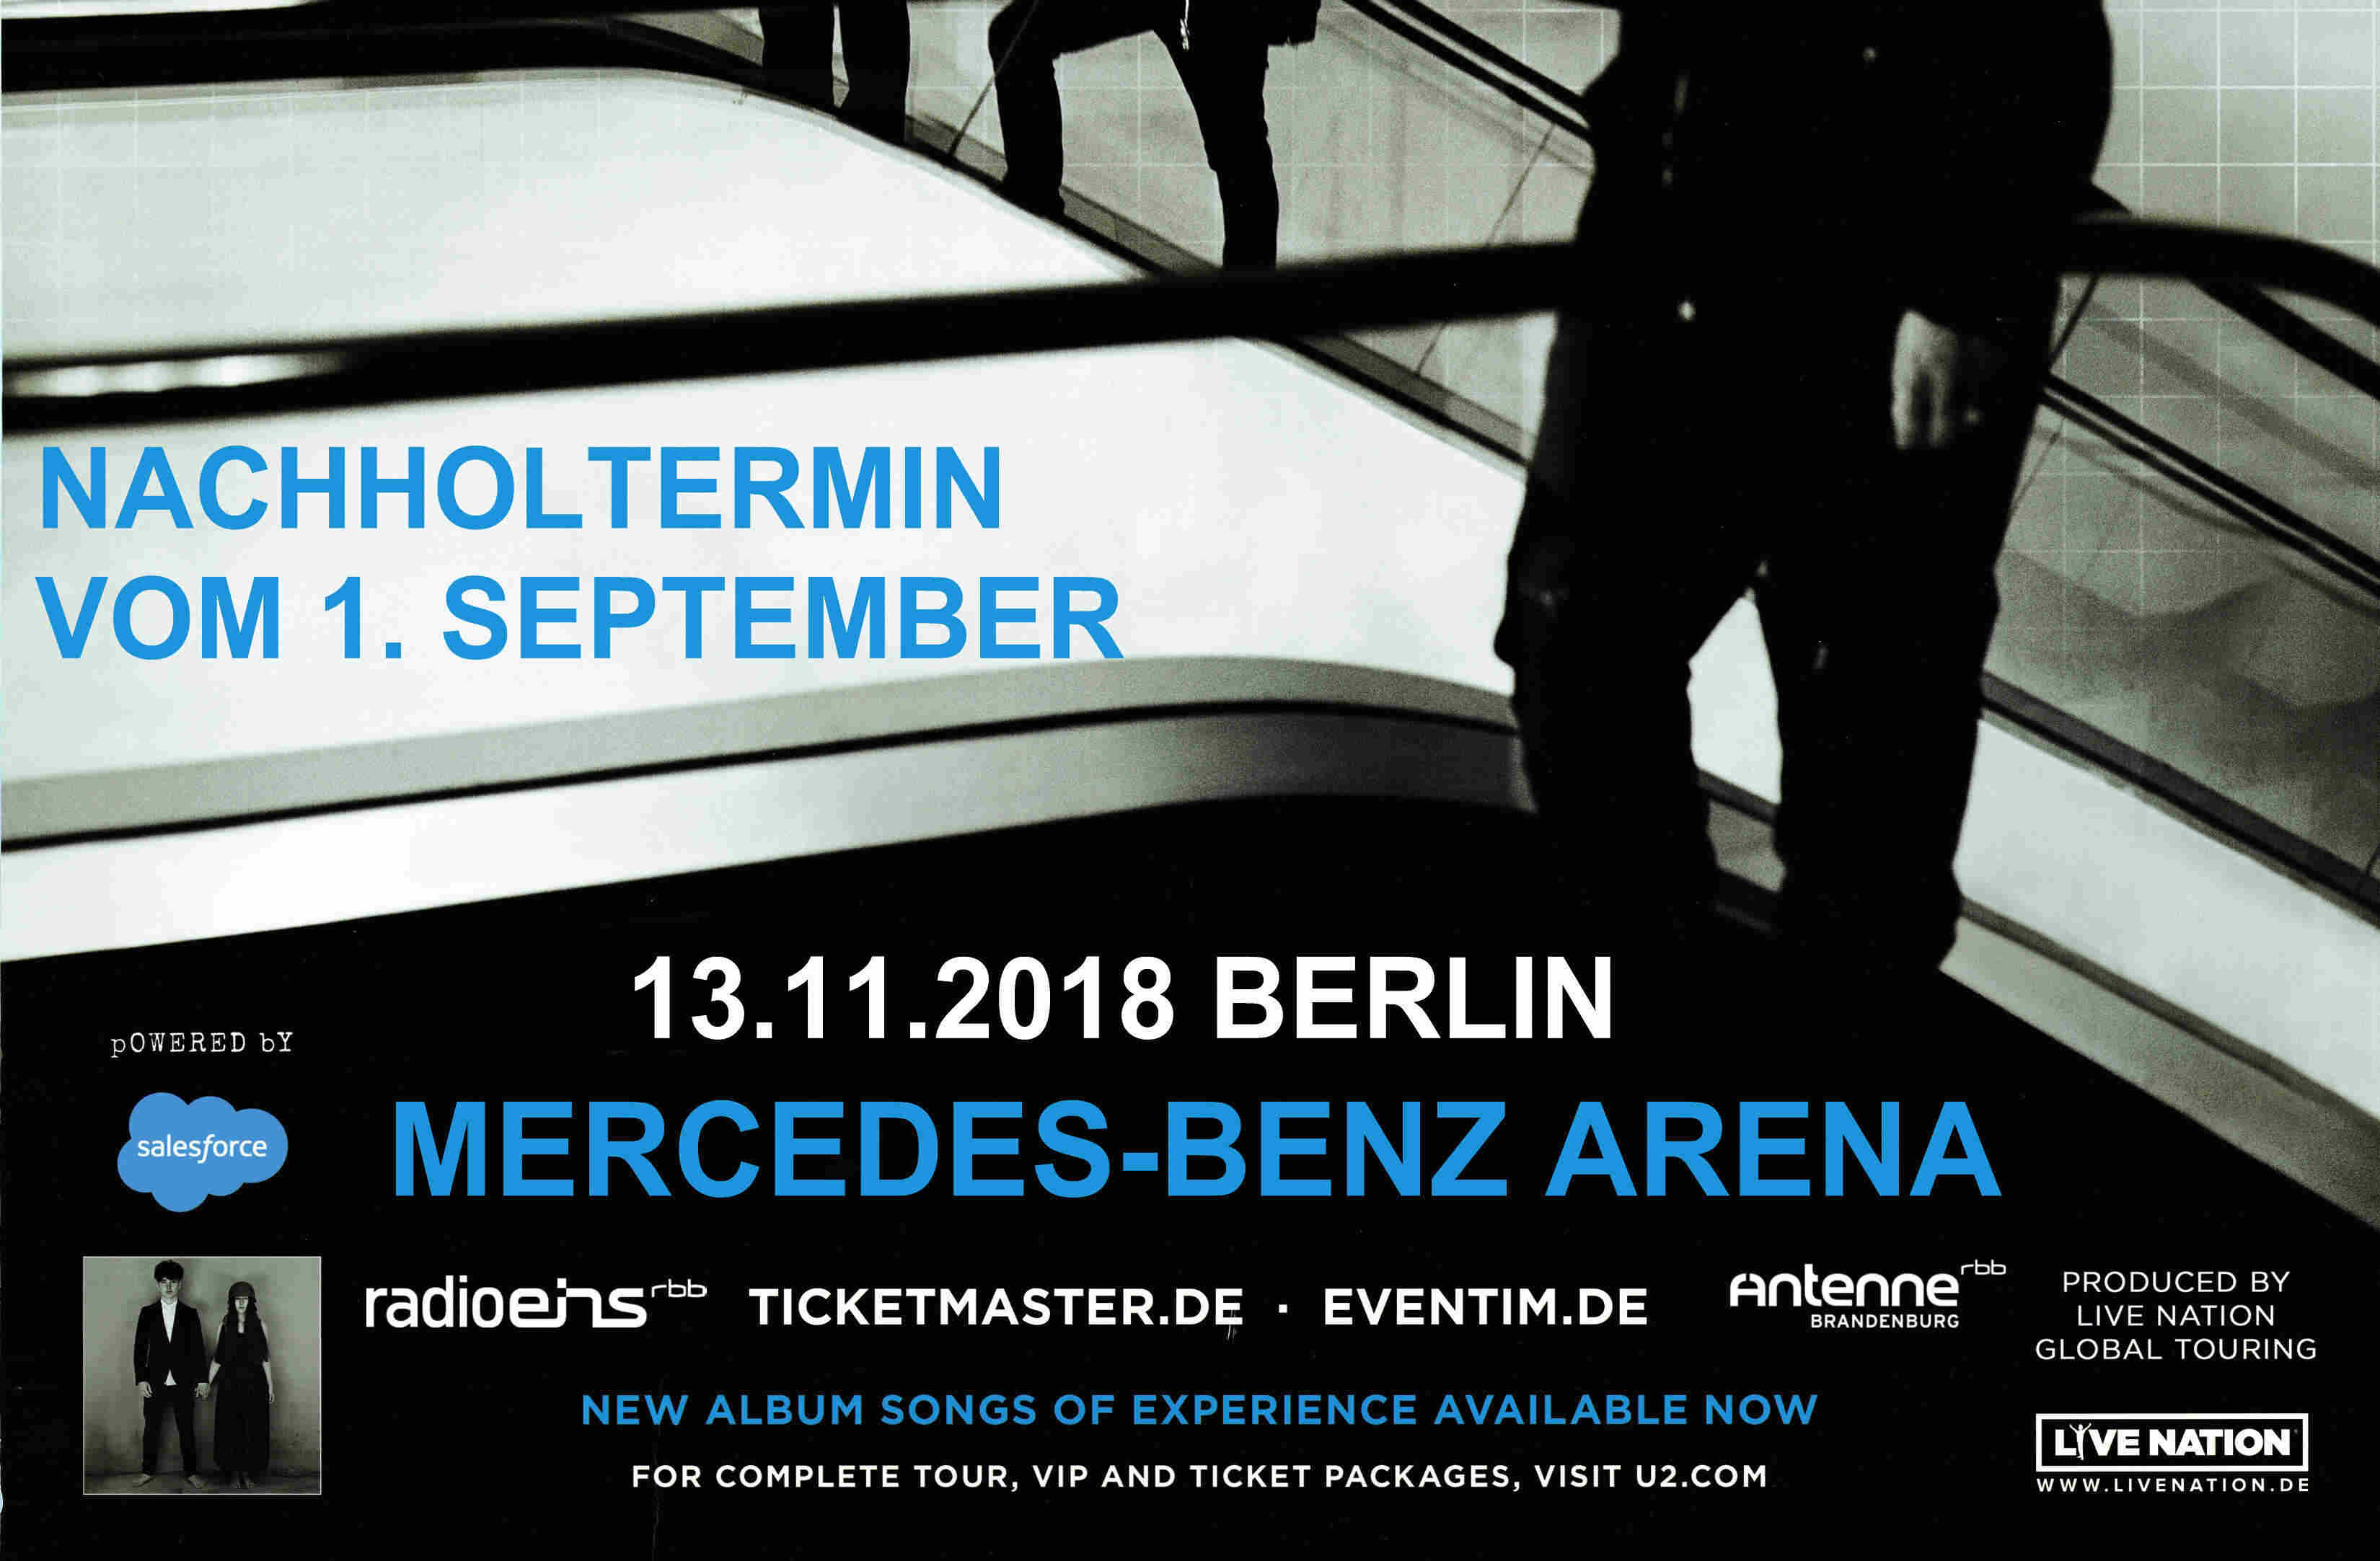 U2 News Berlin Konzert Am 13 November Wird Gefilmt U2tourde